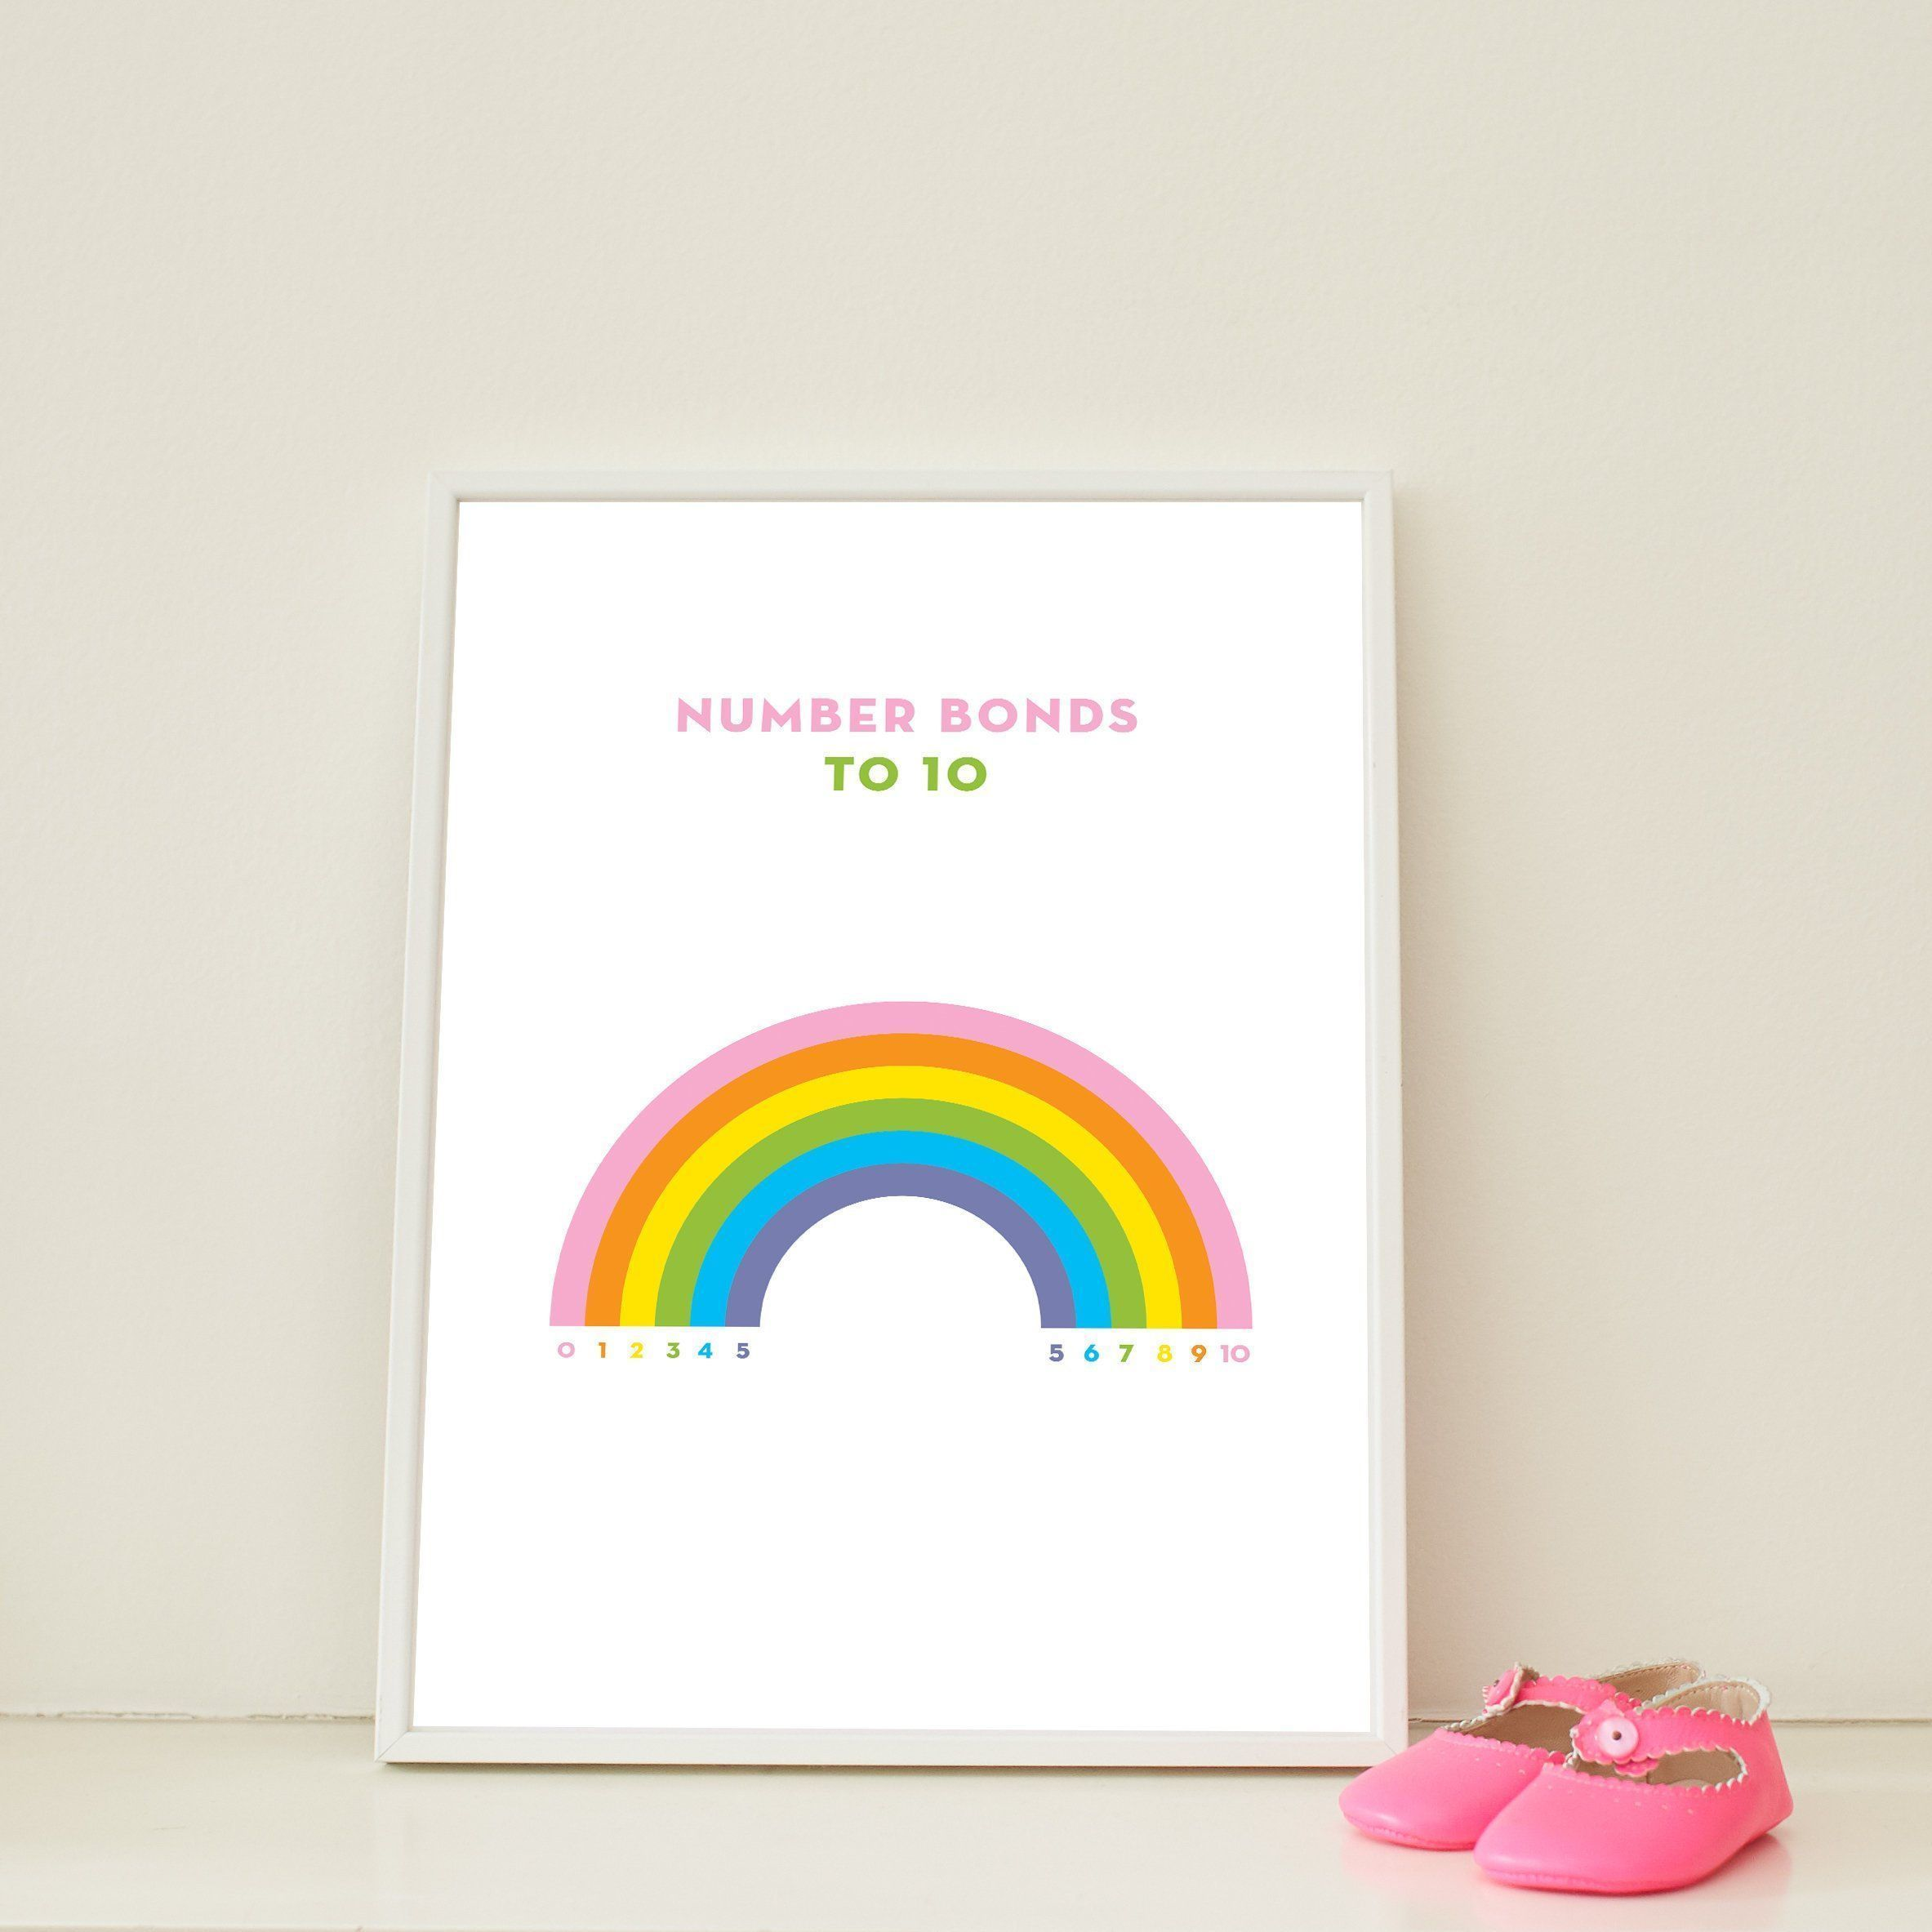 Rainbow Bonds To 10 #bondingwithchild An educational and stylish rainbow bonds to 10 poster, which can take pride of place on the wall in the room of any curious child. #bondingwithchild Rainbow Bonds To 10 #bondingwithchild An educational and stylish rainbow bonds to 10 poster, which can take pride of place on the wall in the room of any curious child. #bondingwithchild Rainbow Bonds To 10 #bondingwithchild An educational and stylish rainbow bonds to 10 poster, which can take pride of place on #bondingwithchild